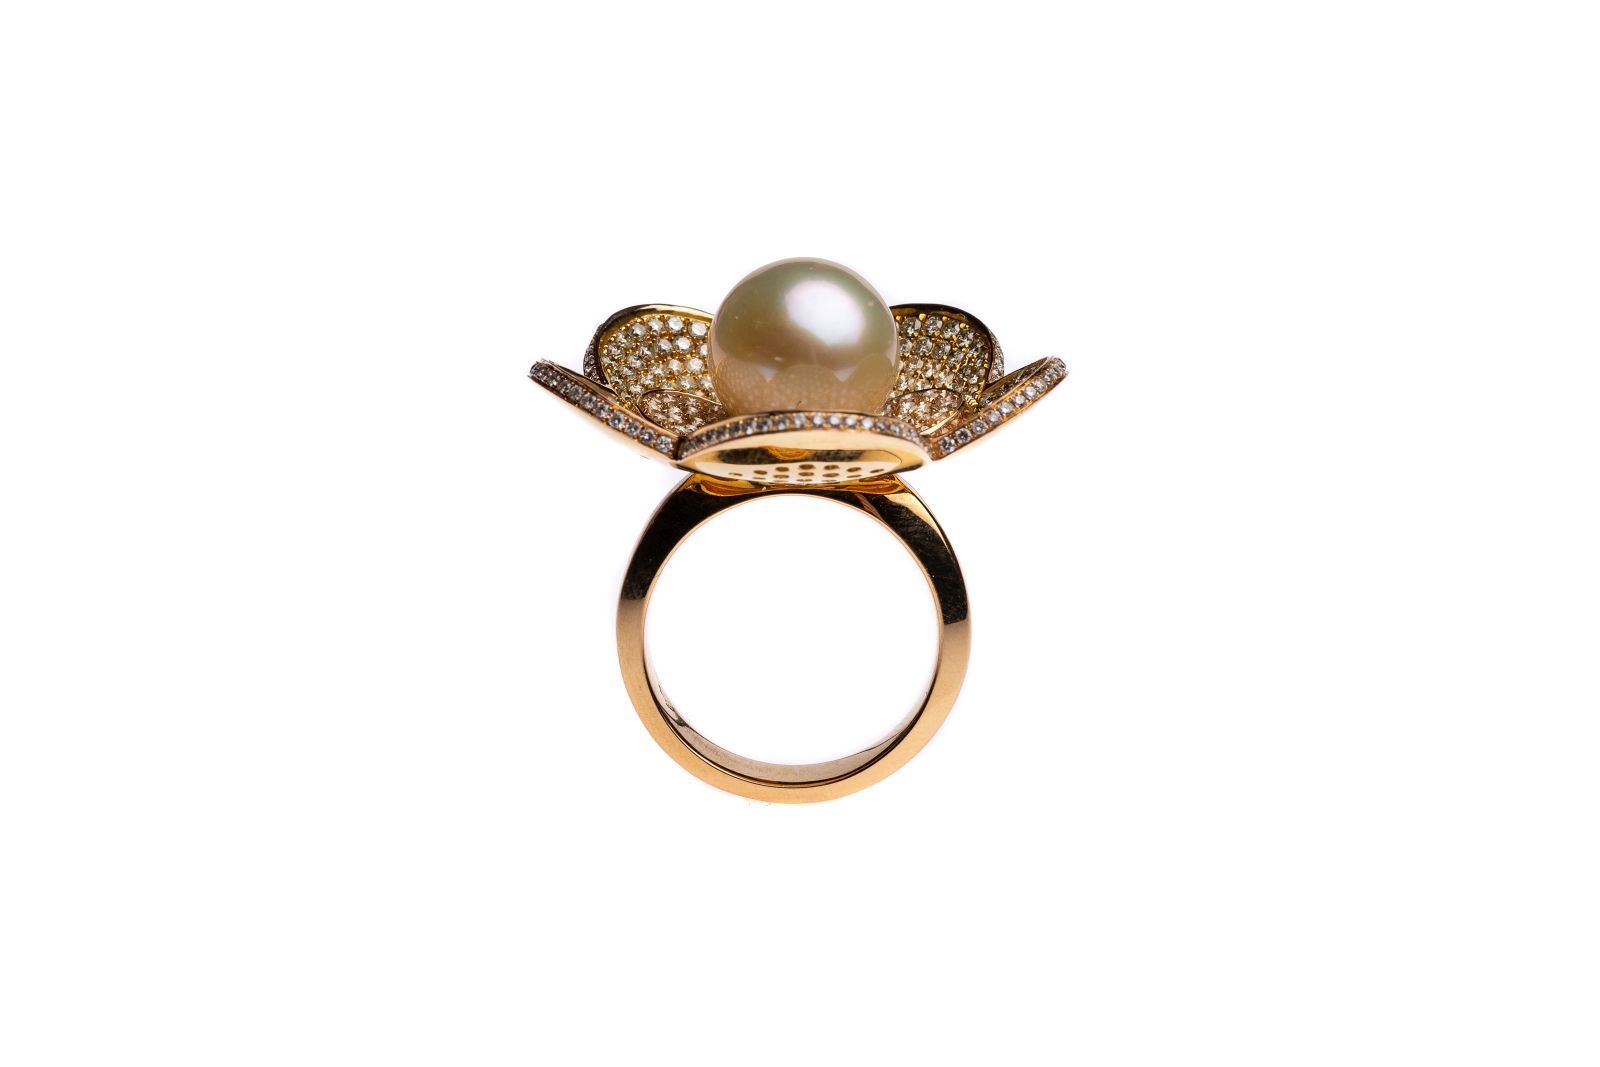 #84 Flowers ring | Blumen-Ring Image